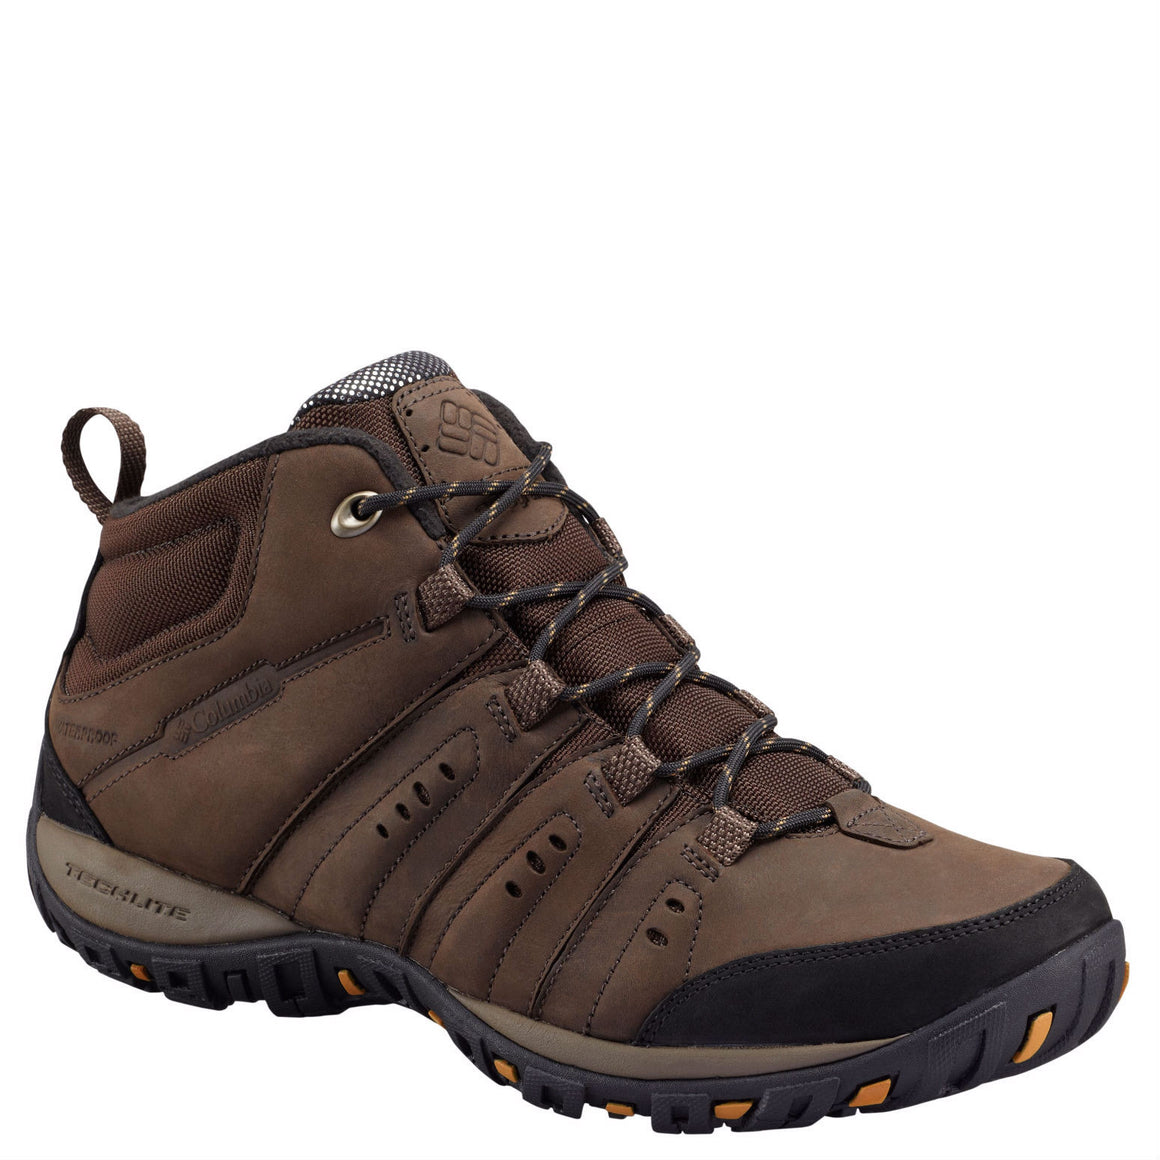 Columbia Men's PeakFreak Nomad Plus Chukka WP Omni-Heat Boot - Cordovan/Canyon Gold 1650181 - ShoeShackOnline